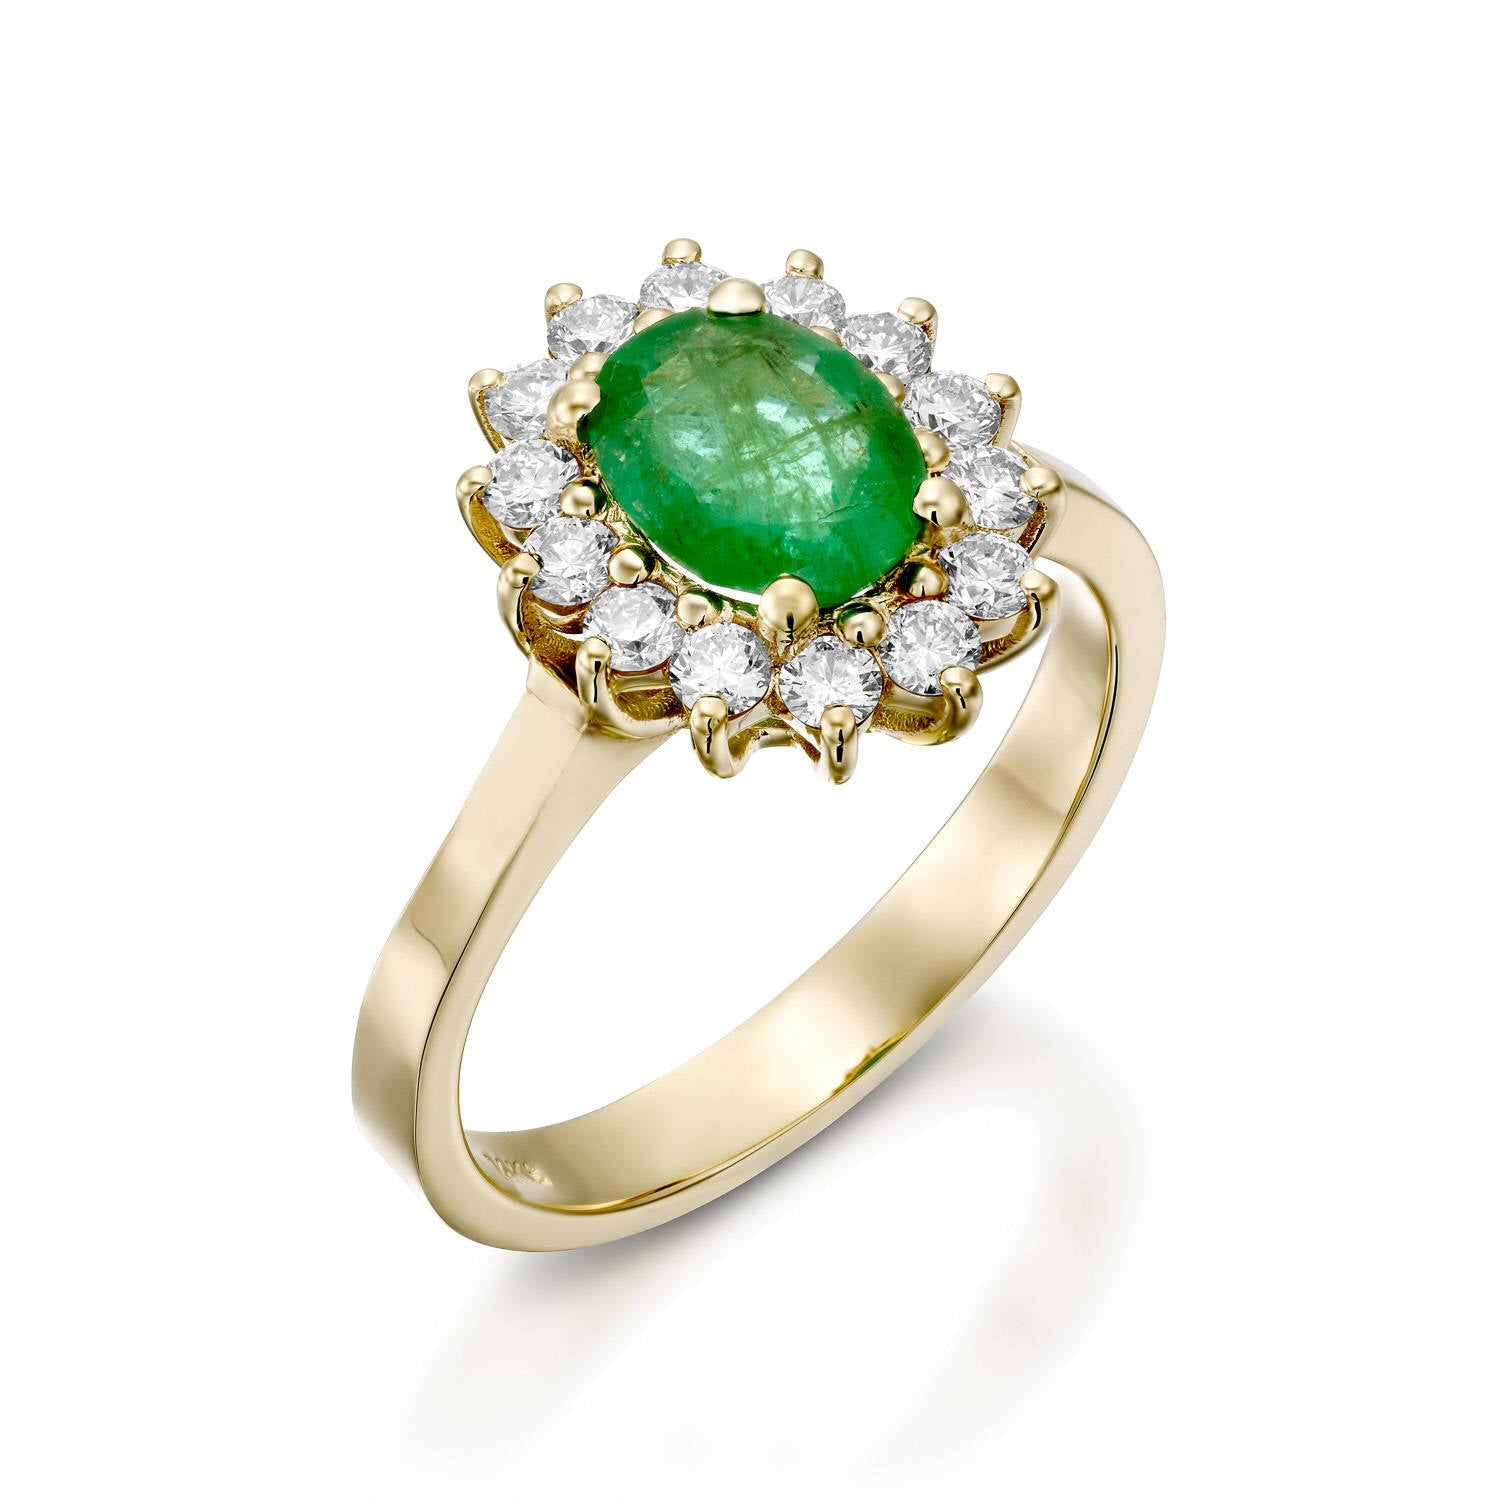 Vintage Oval engagement ring-1 carat Green Emerald Engagement Ring-Diamond ring with Emerald-Green Emerald-Yellow Gold Ring - SevenCarat